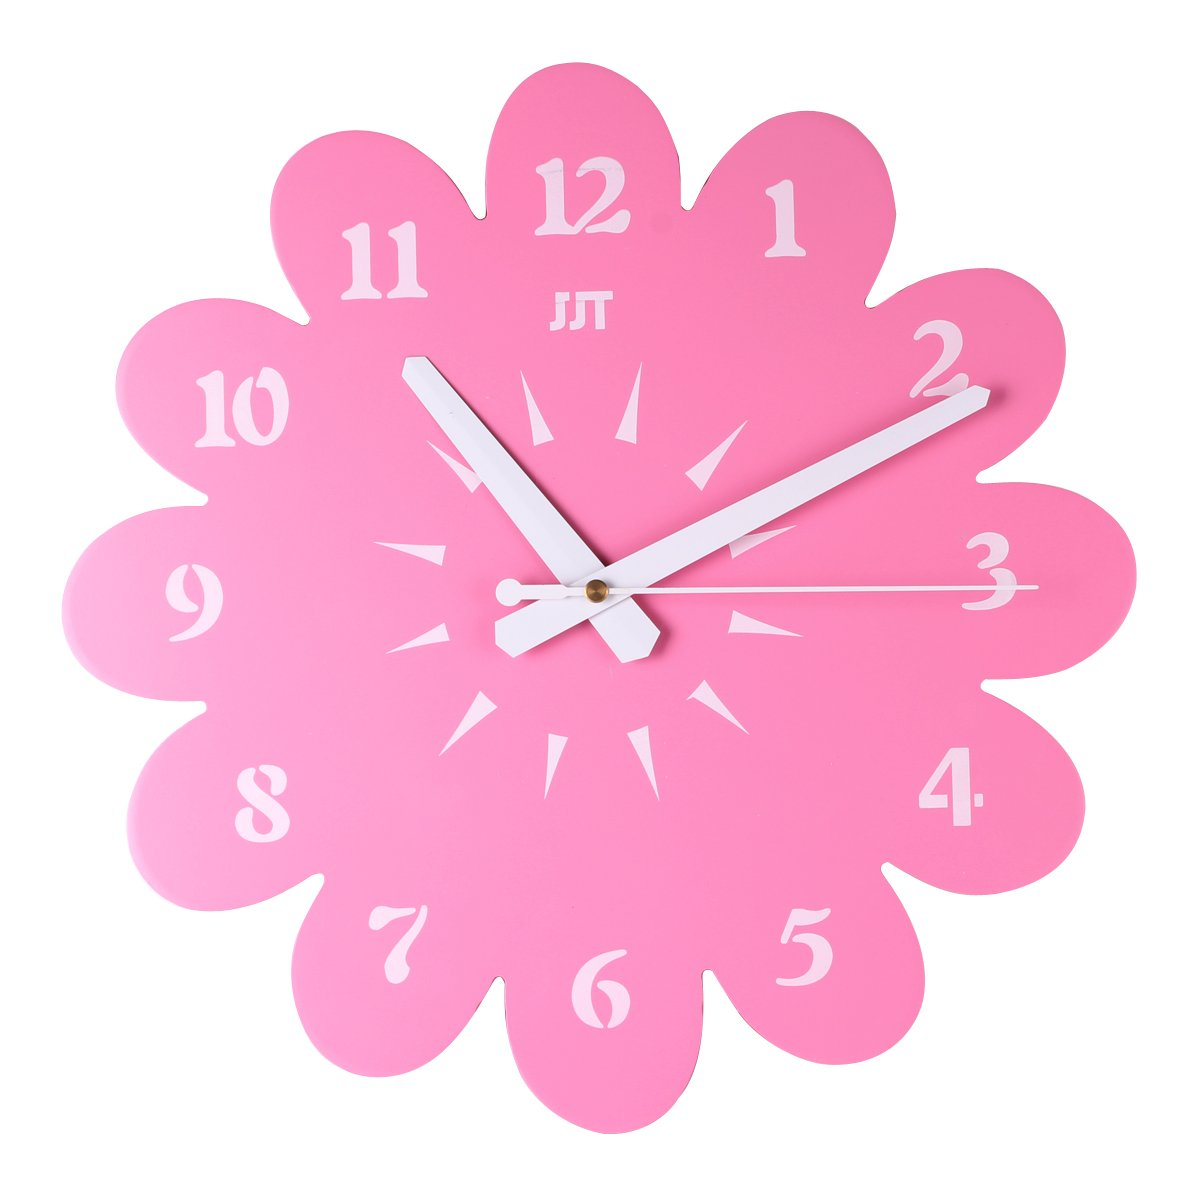 Bedroom Wall Clock Design : Colorful clocks for any room